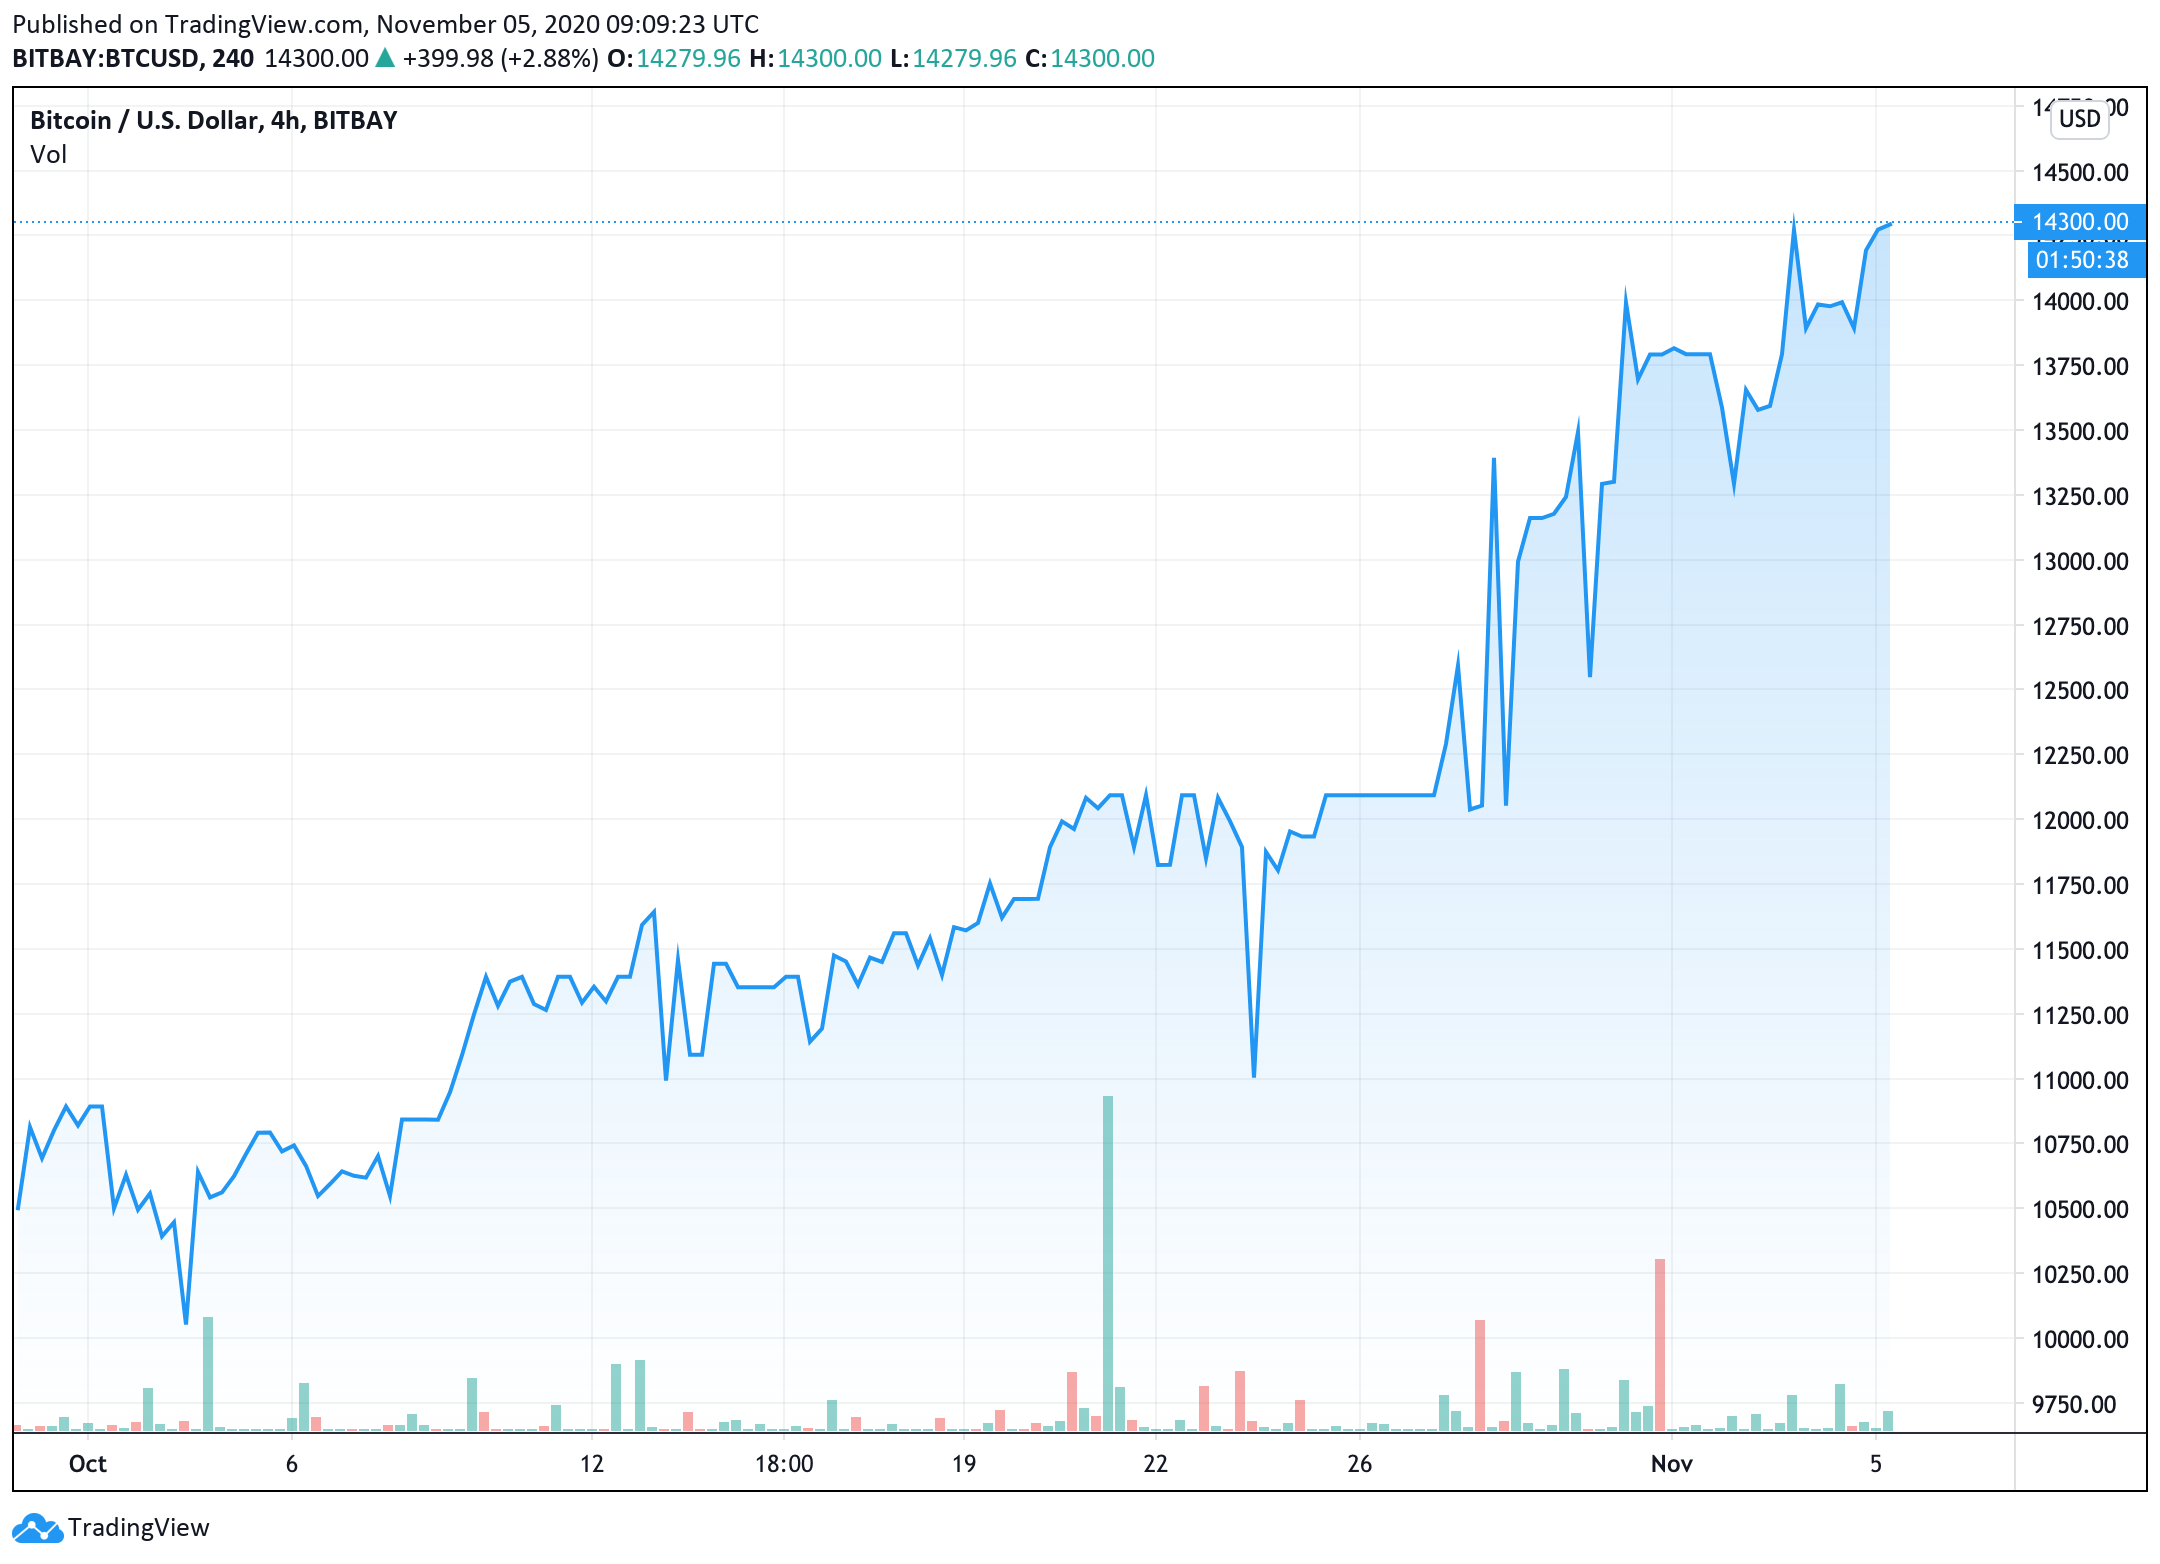 bitcoin-price-increased-by-more-than-5-in-the-last-24-hours